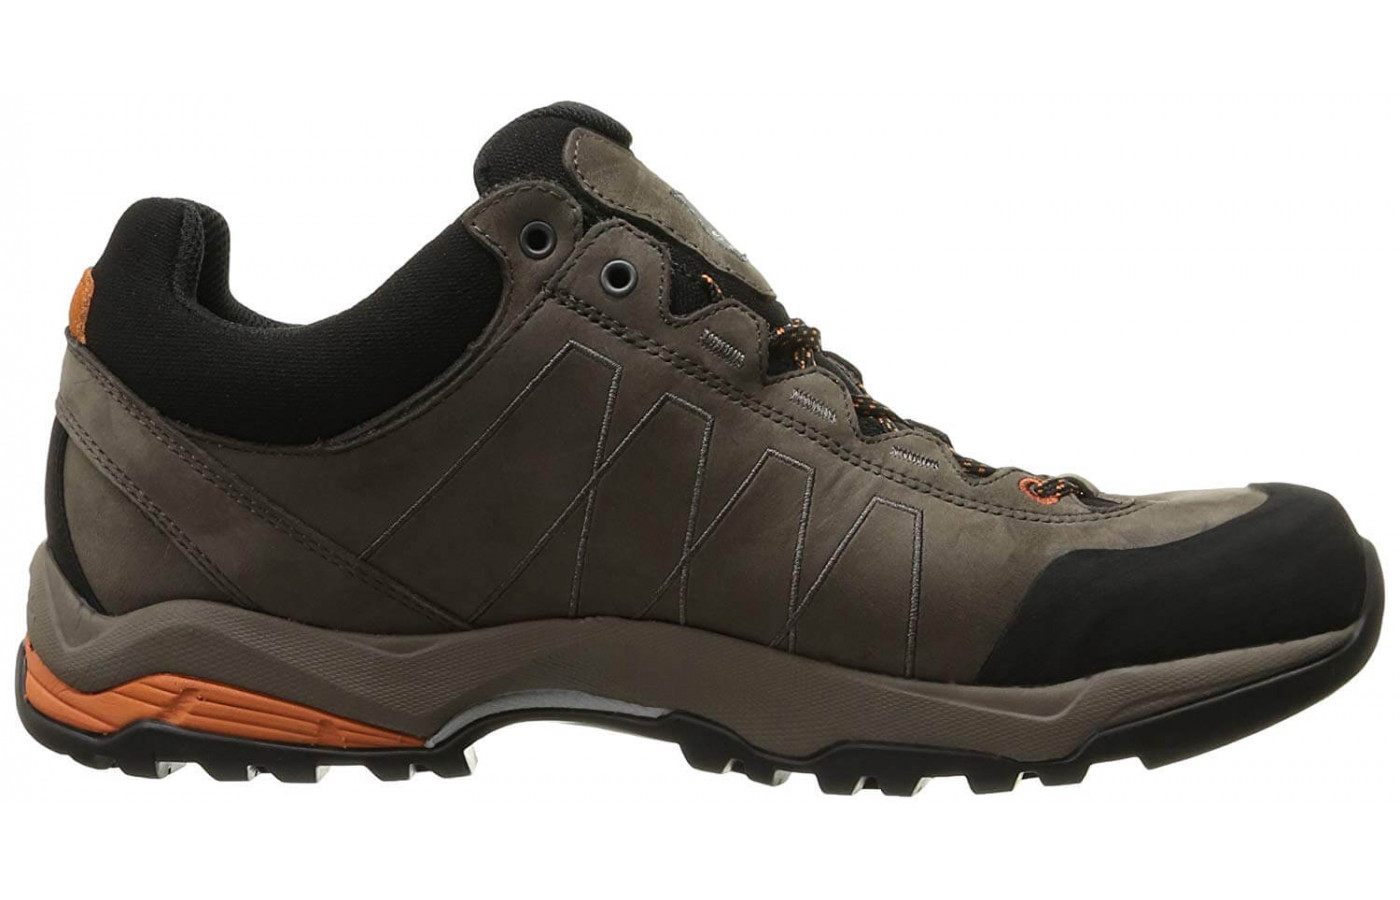 The Moraine Plus GTX features a dual-density EVA midsole